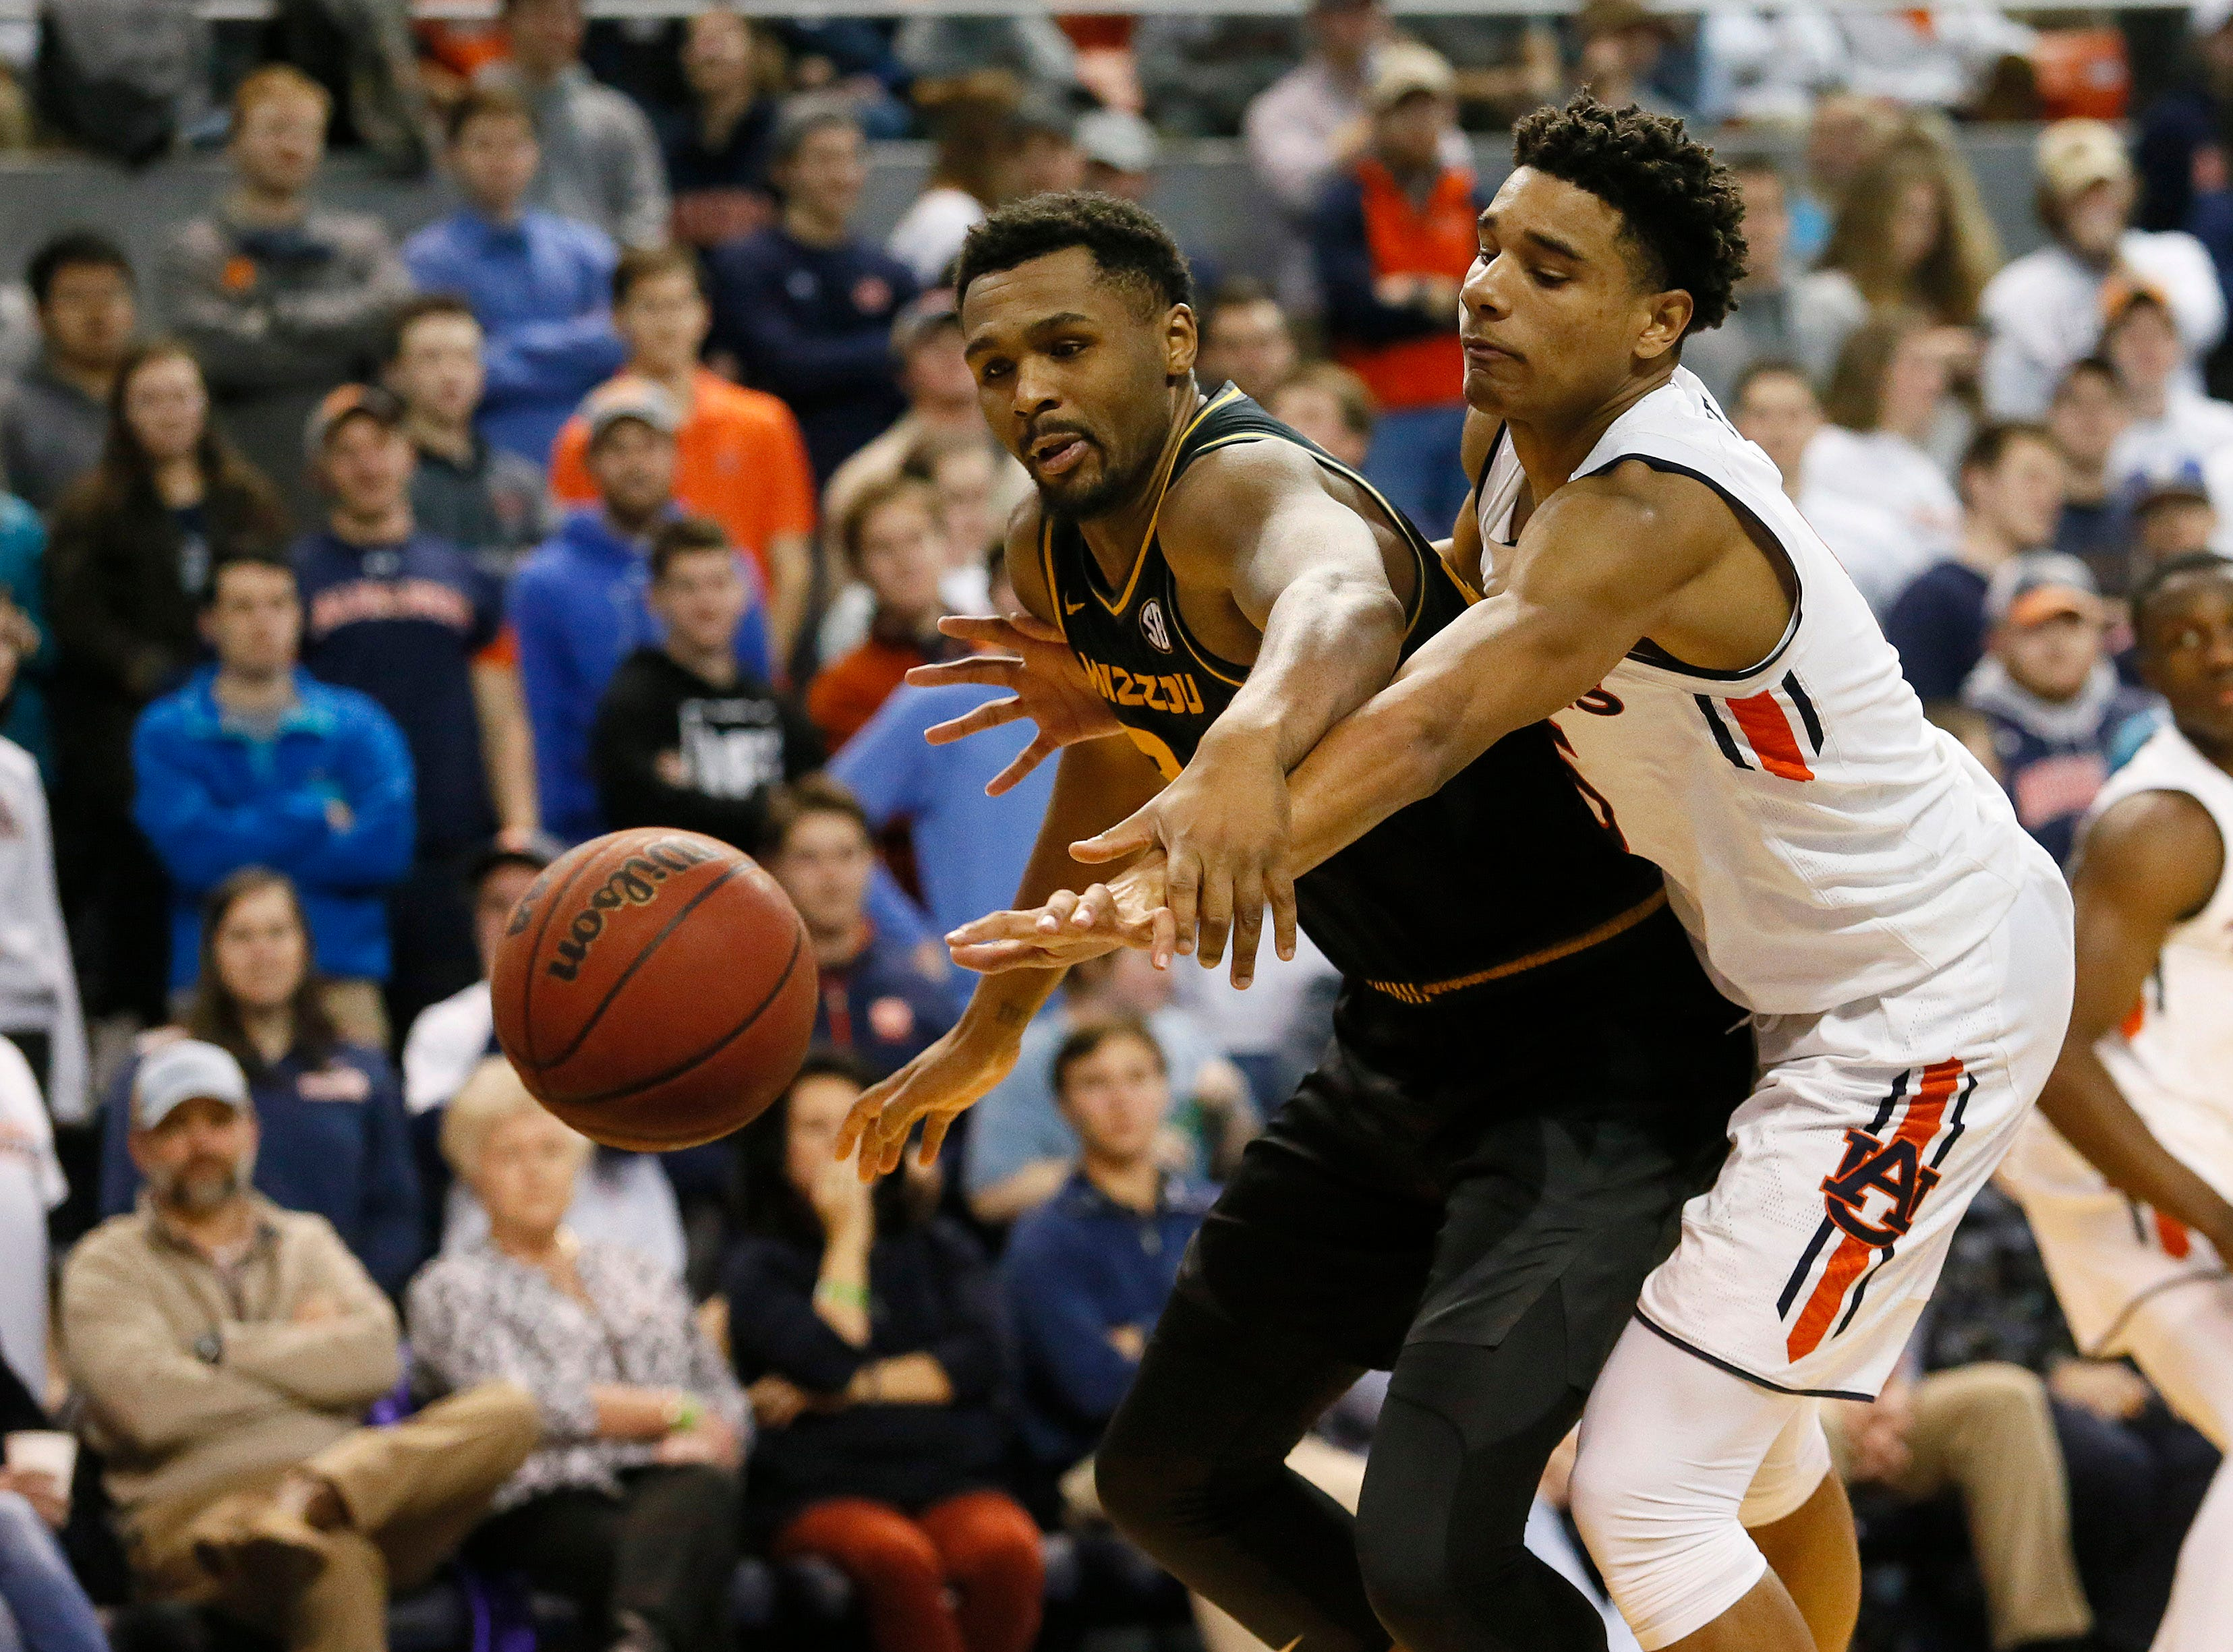 Jan 30, 2019; Auburn, AL, USA; Auburn Tigers forward Chuma Okeke (5) and Missouri Tigers forward Kevin Puryear (24) fight for the ball during the second half at Auburn Arena. Mandatory Credit: John Reed-USA TODAY Sports